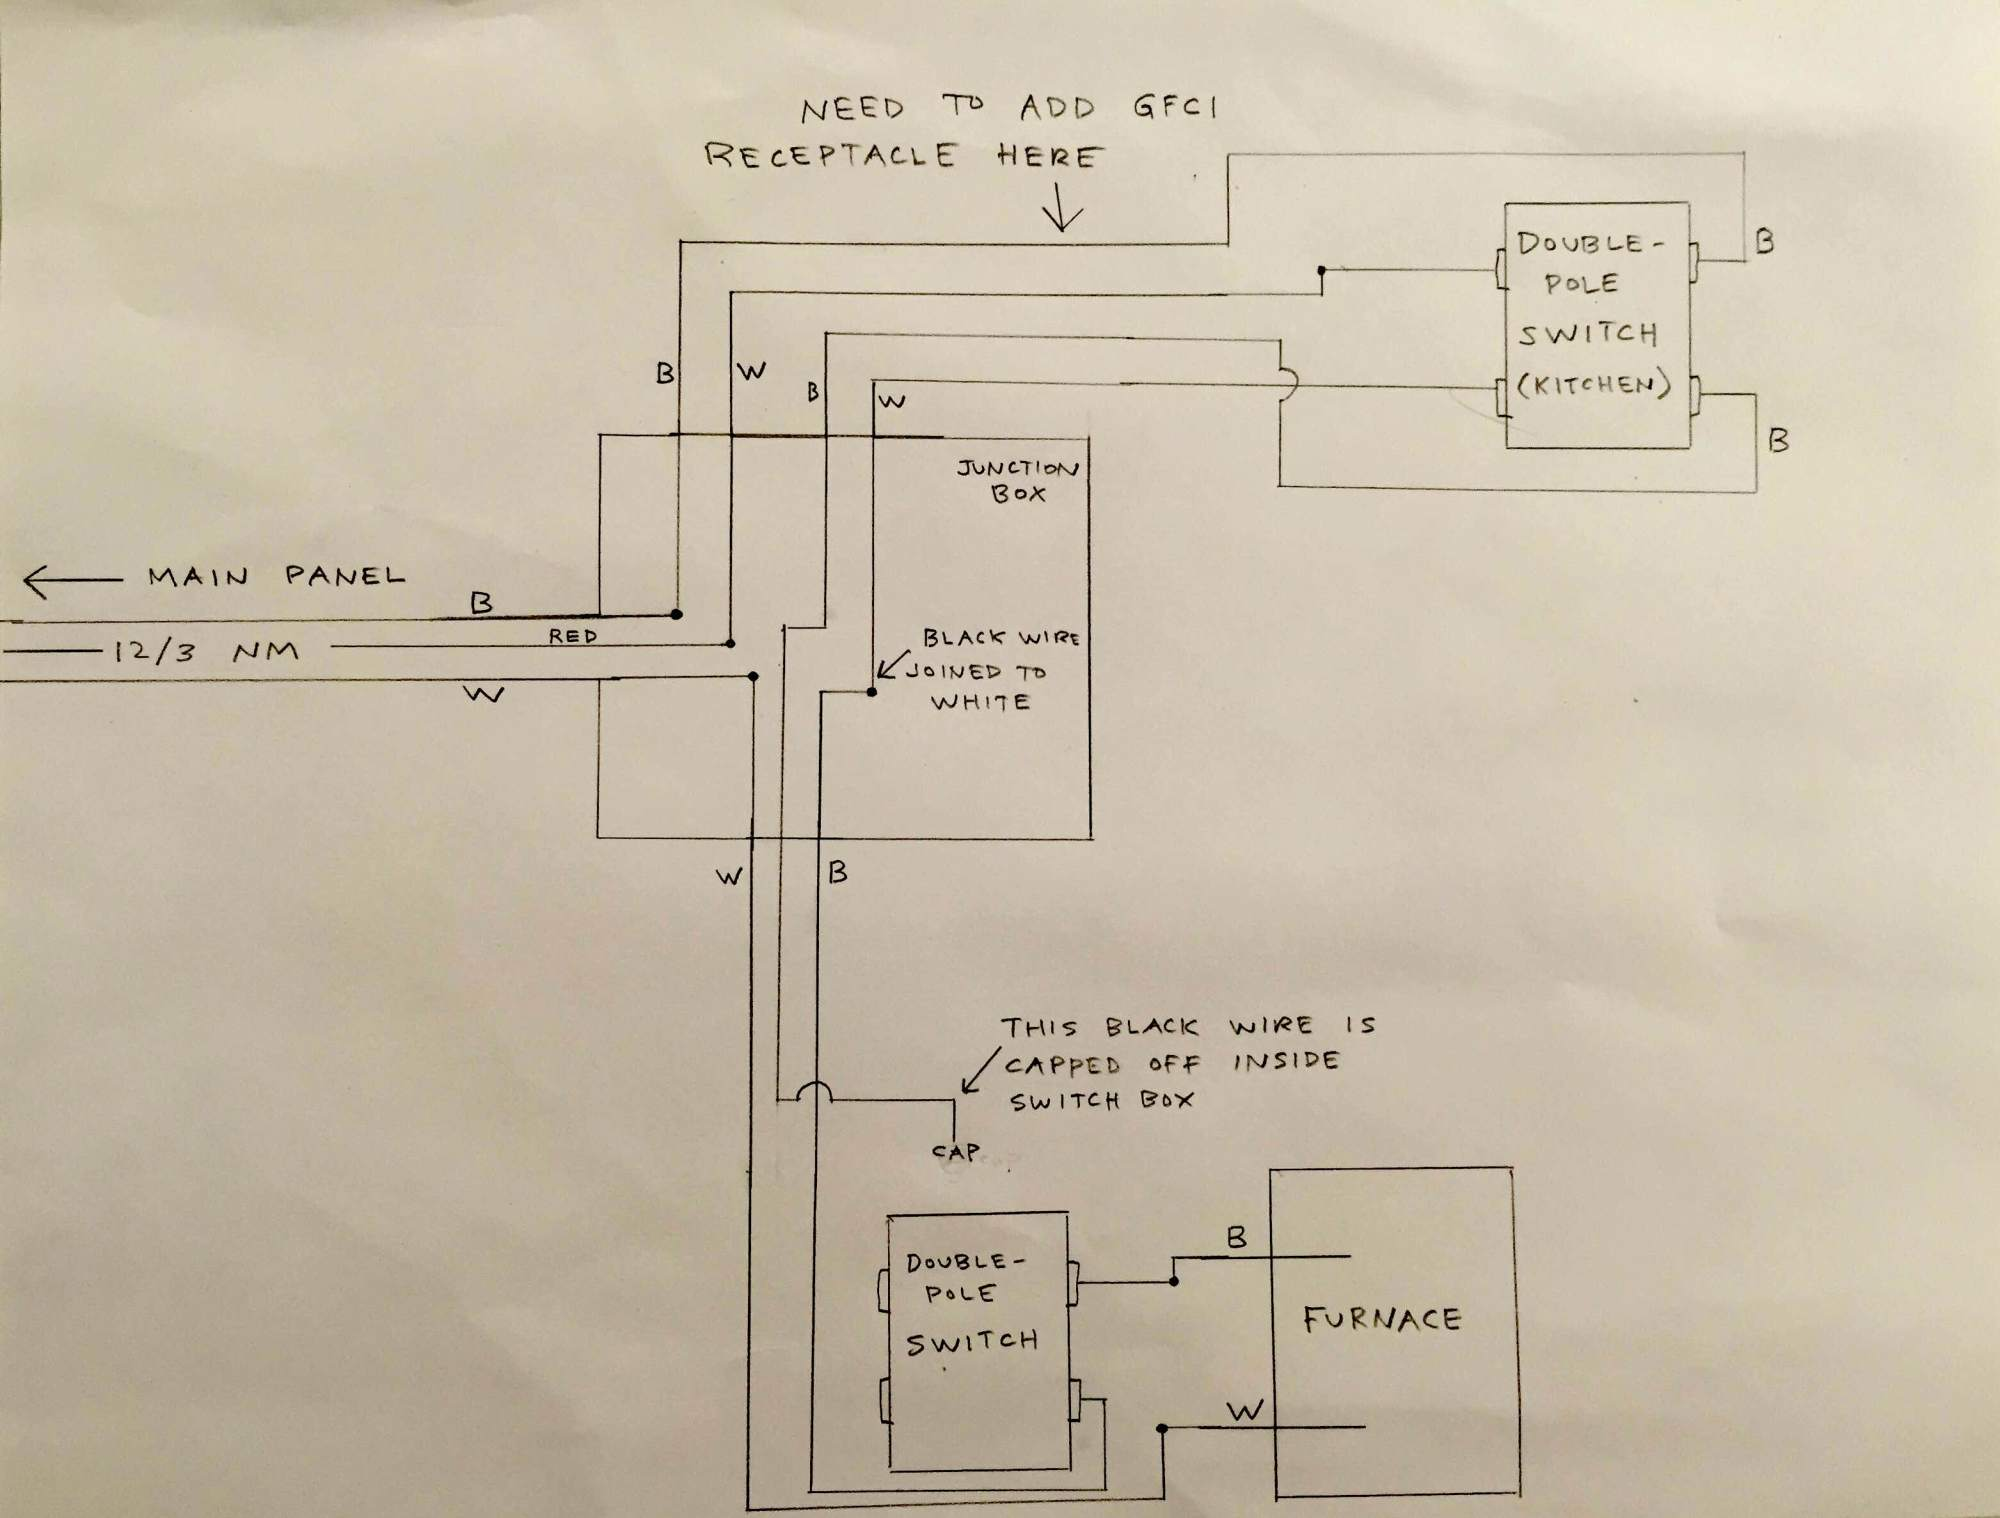 hight resolution of need to add a gfci outlet to an existing furnace circuit homefurnace circuit wiring diagram